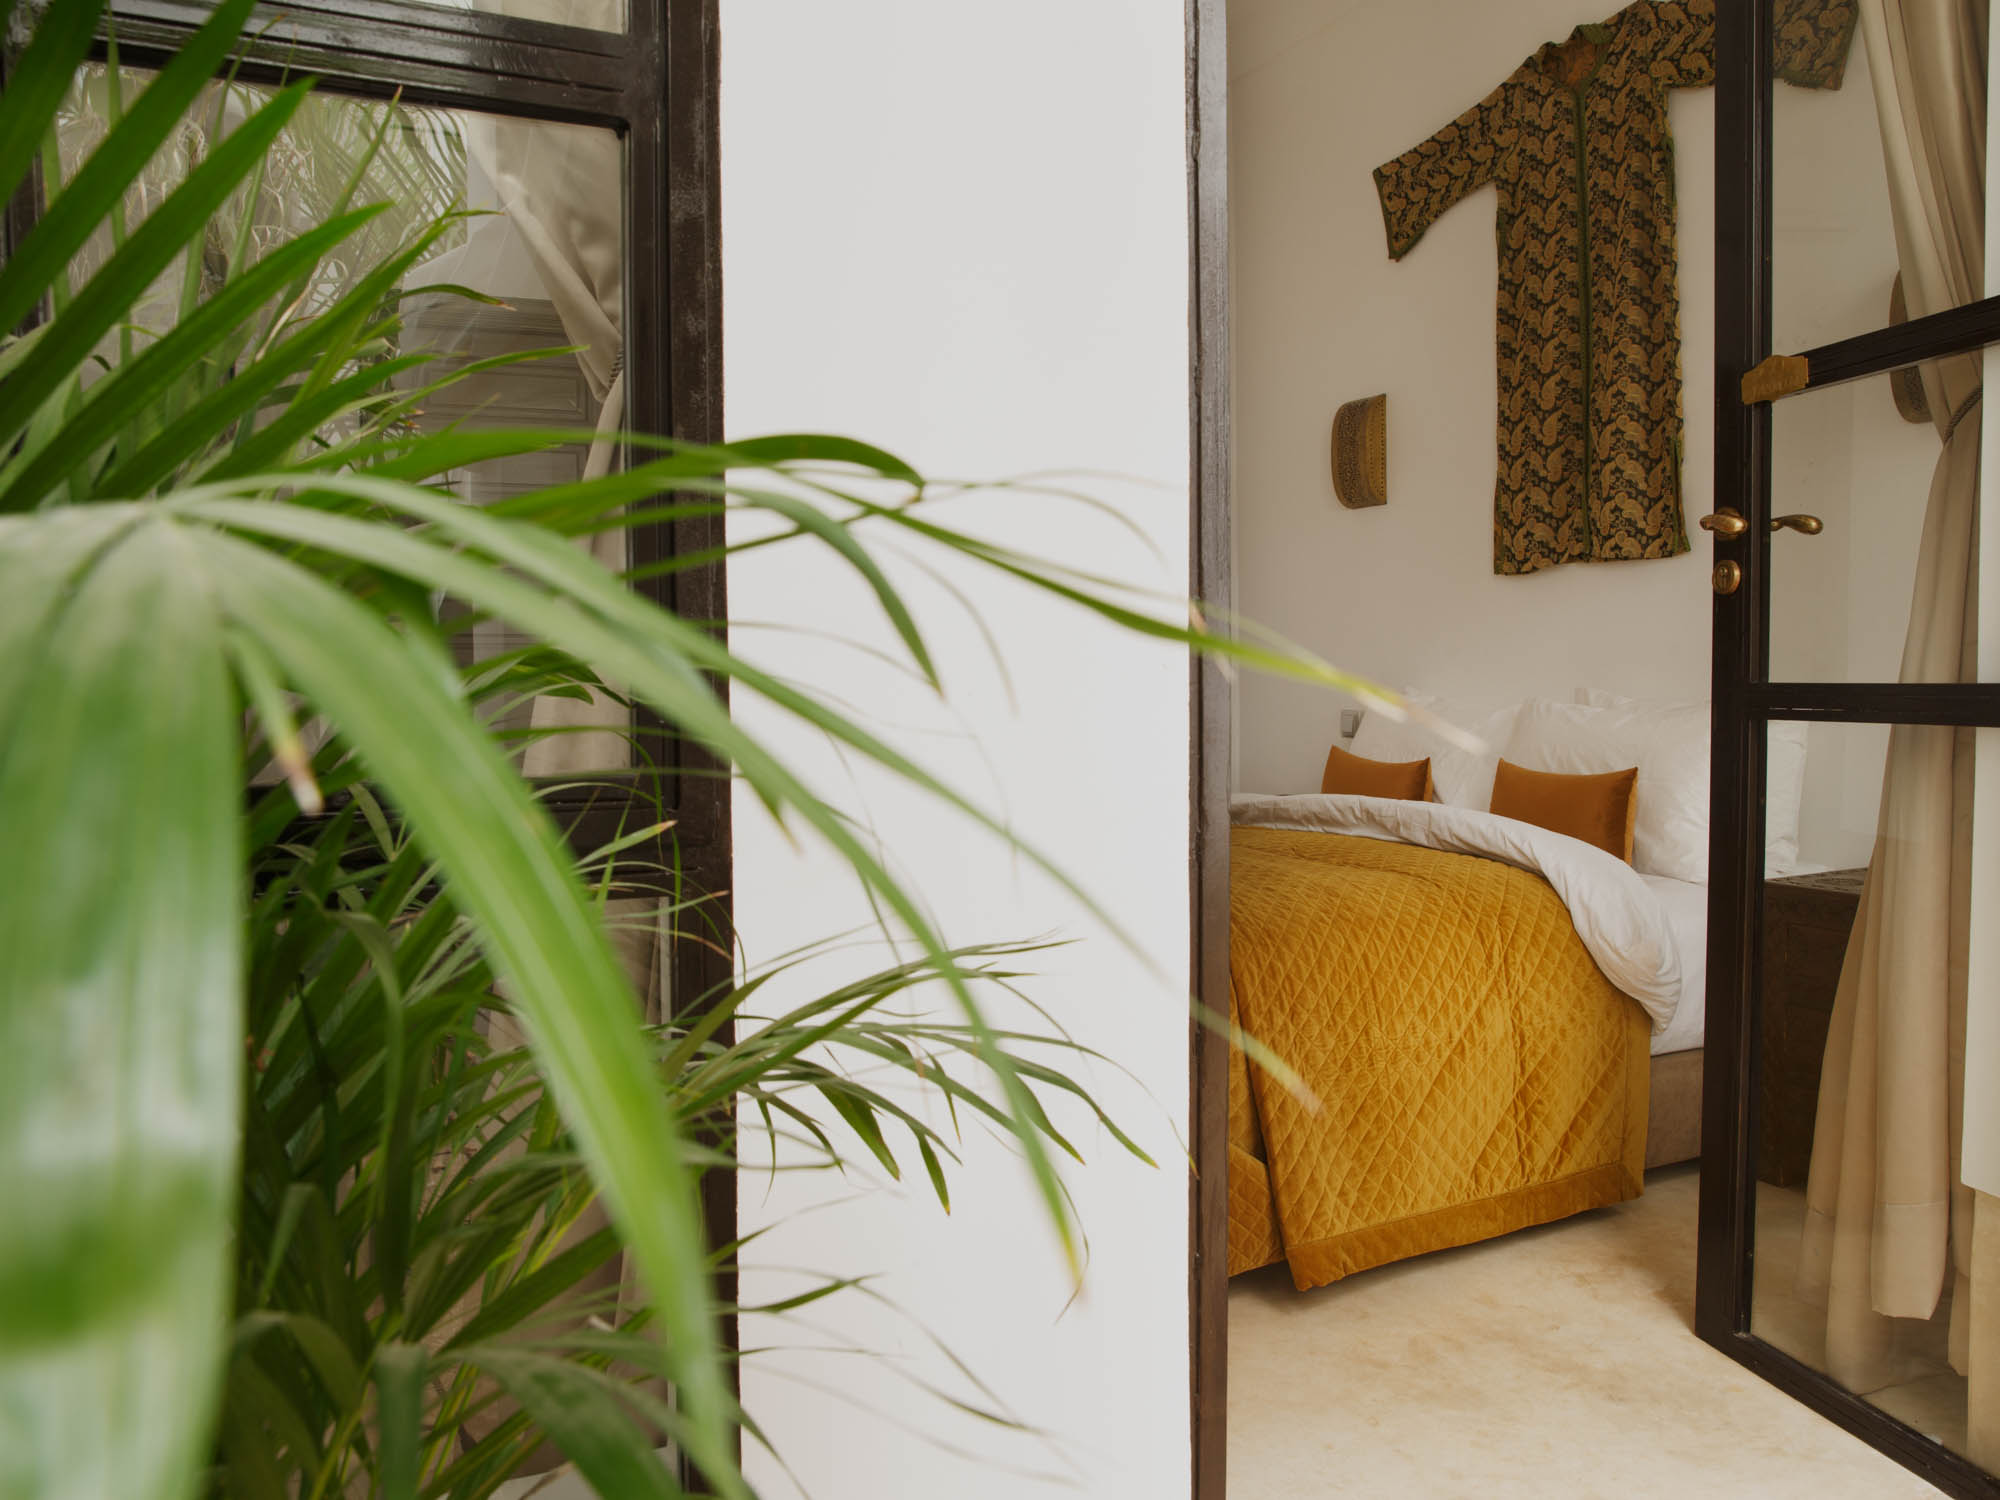 Luxury Bed in Bedroom at Riad hotel with Door Leading to Patio with Broad leaf potted plants